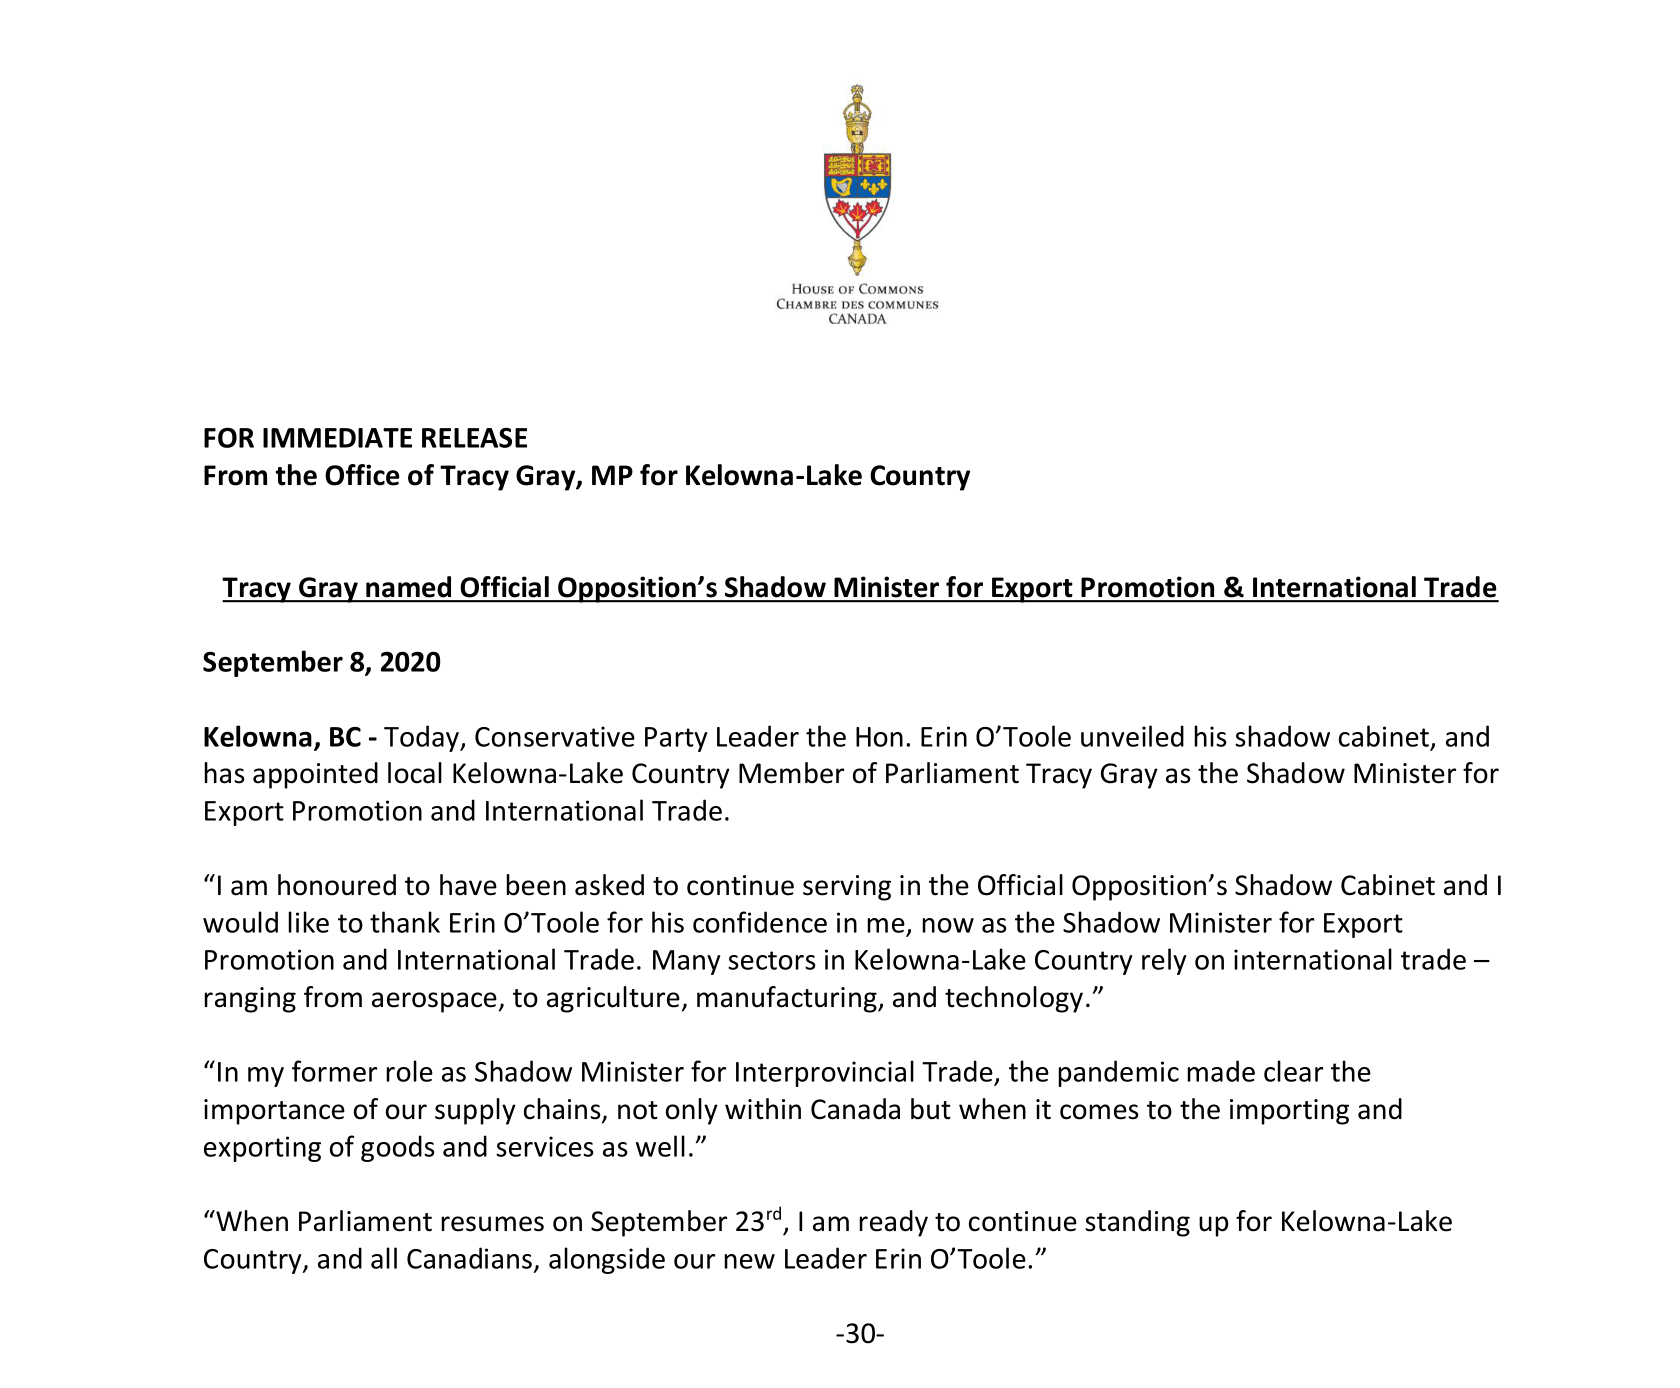 Tracy_Gray_Press_Release_-_September_8_2020-1.png